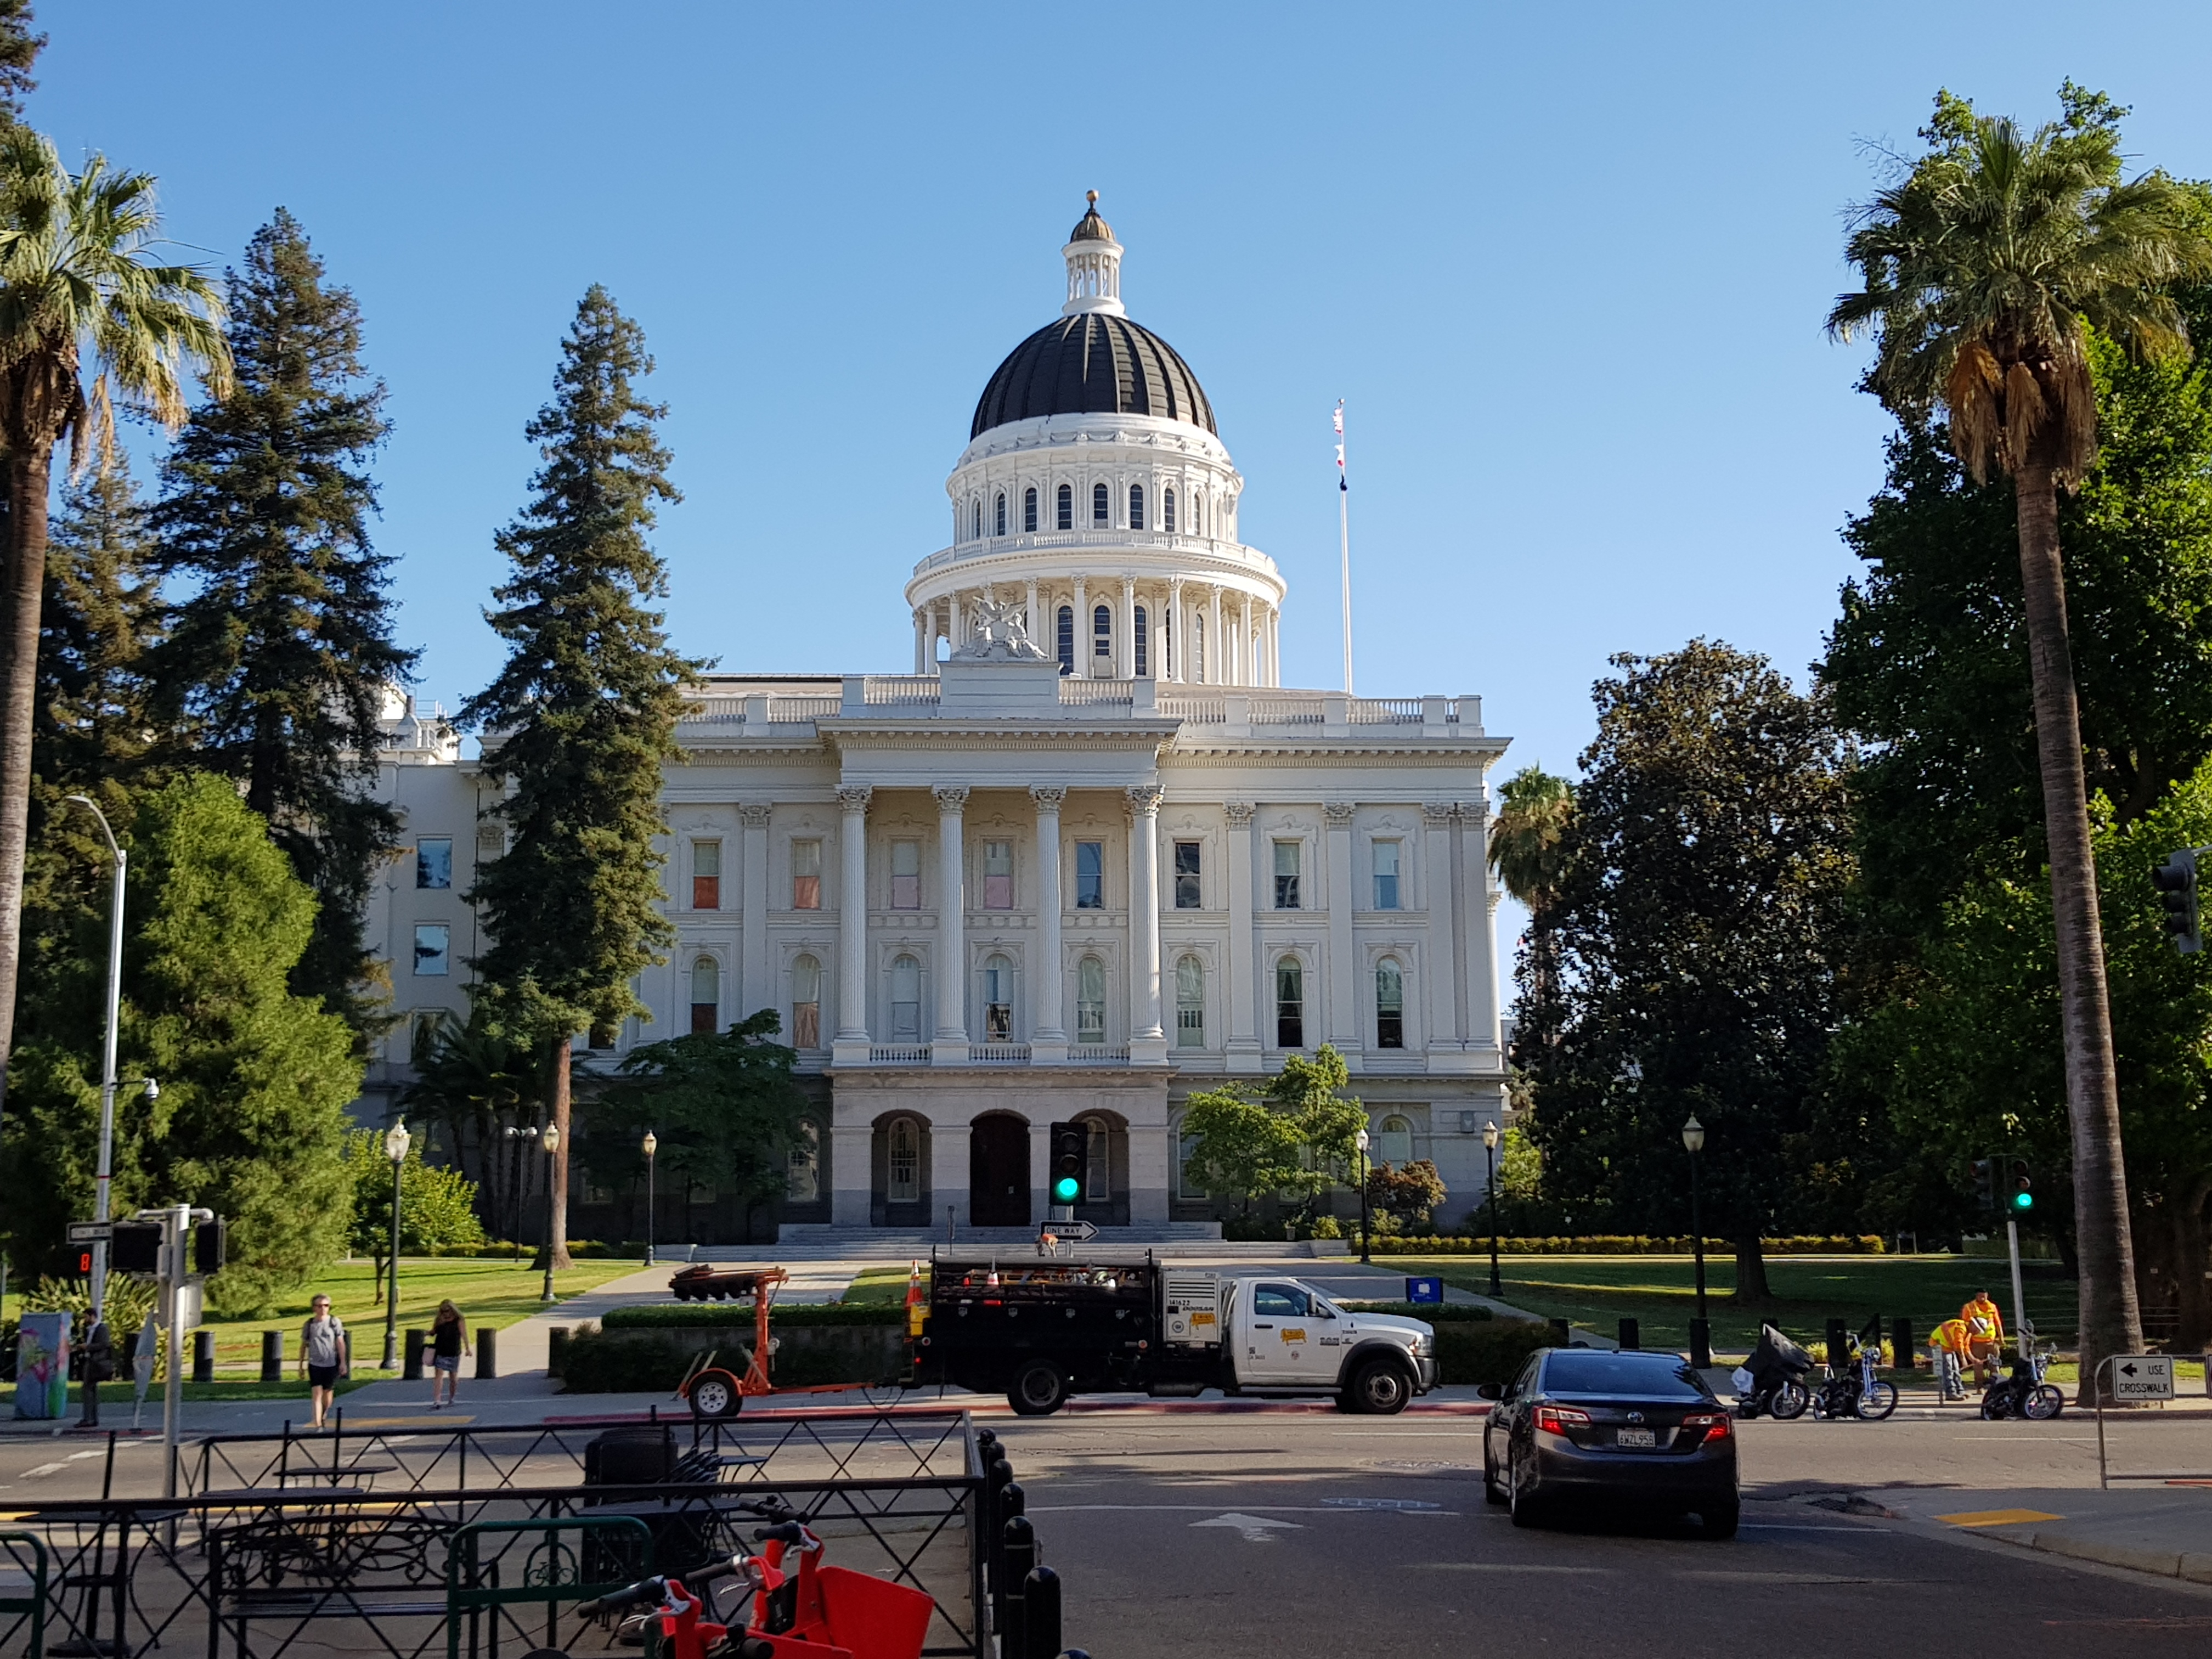 The California State Capitol